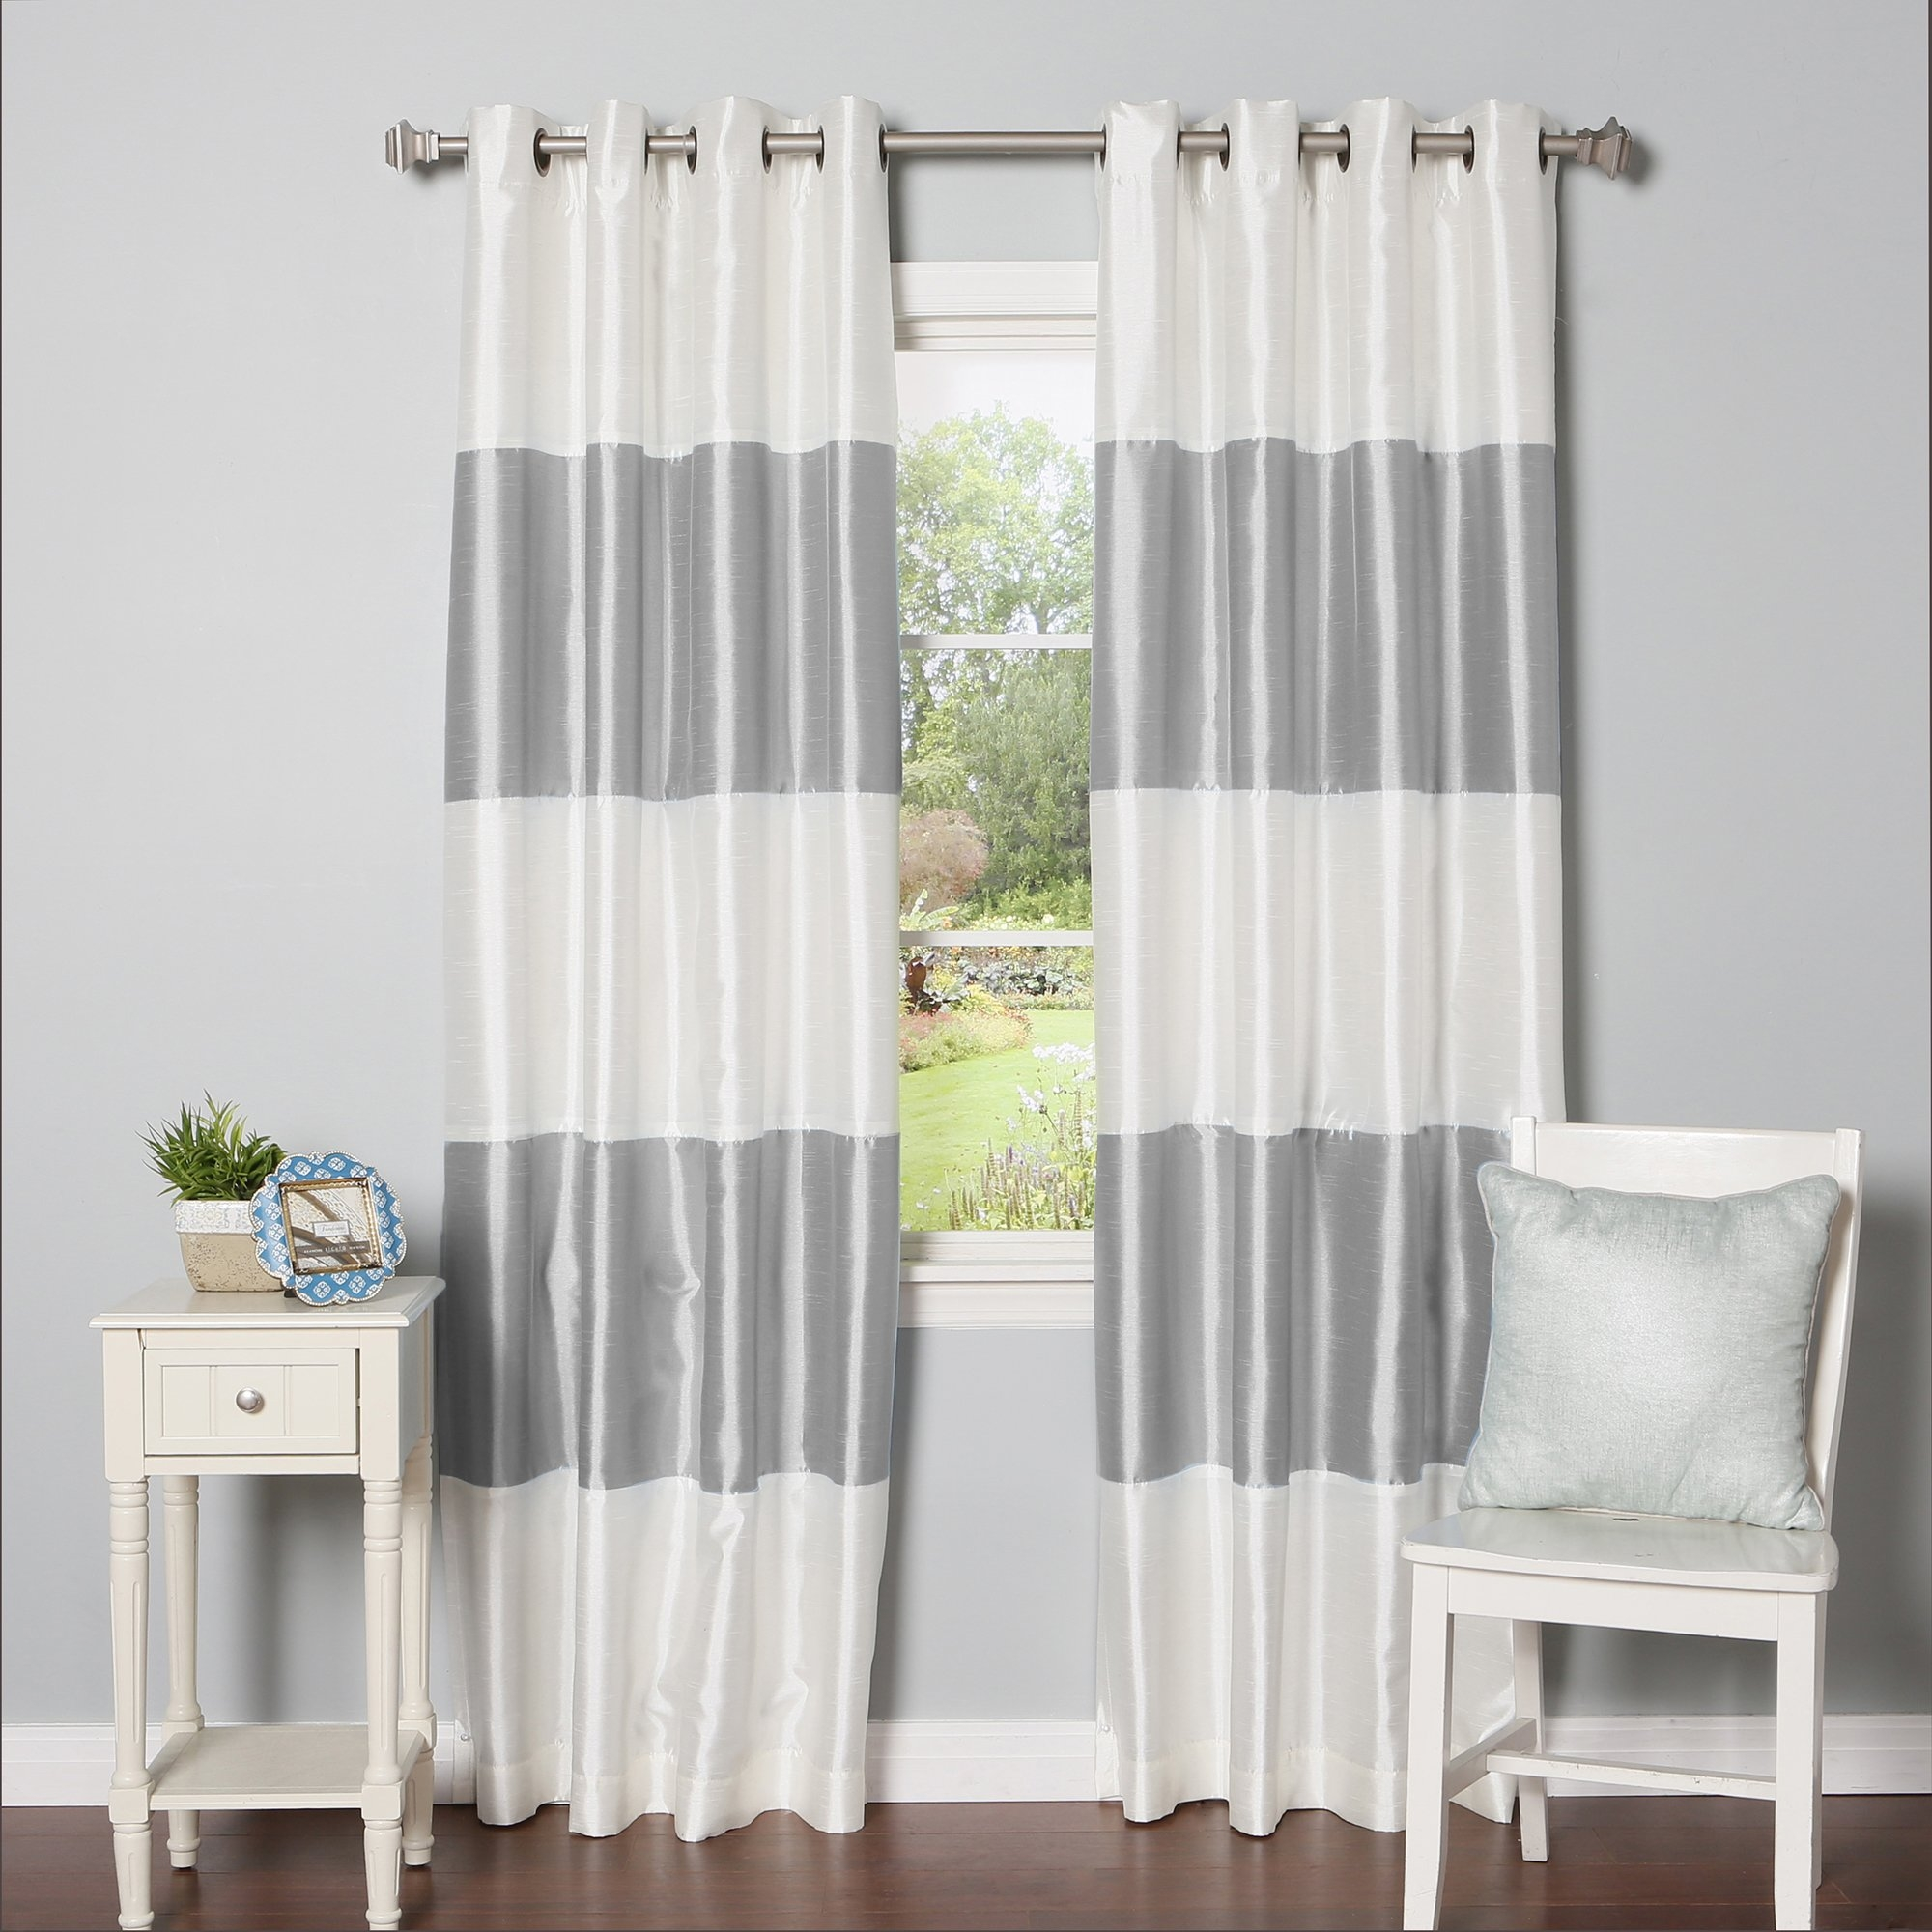 Best Home Fashion Inc Grommet Striped Blackout Thermal Curtain Inside Striped Thermal Curtains (Image 3 of 15)